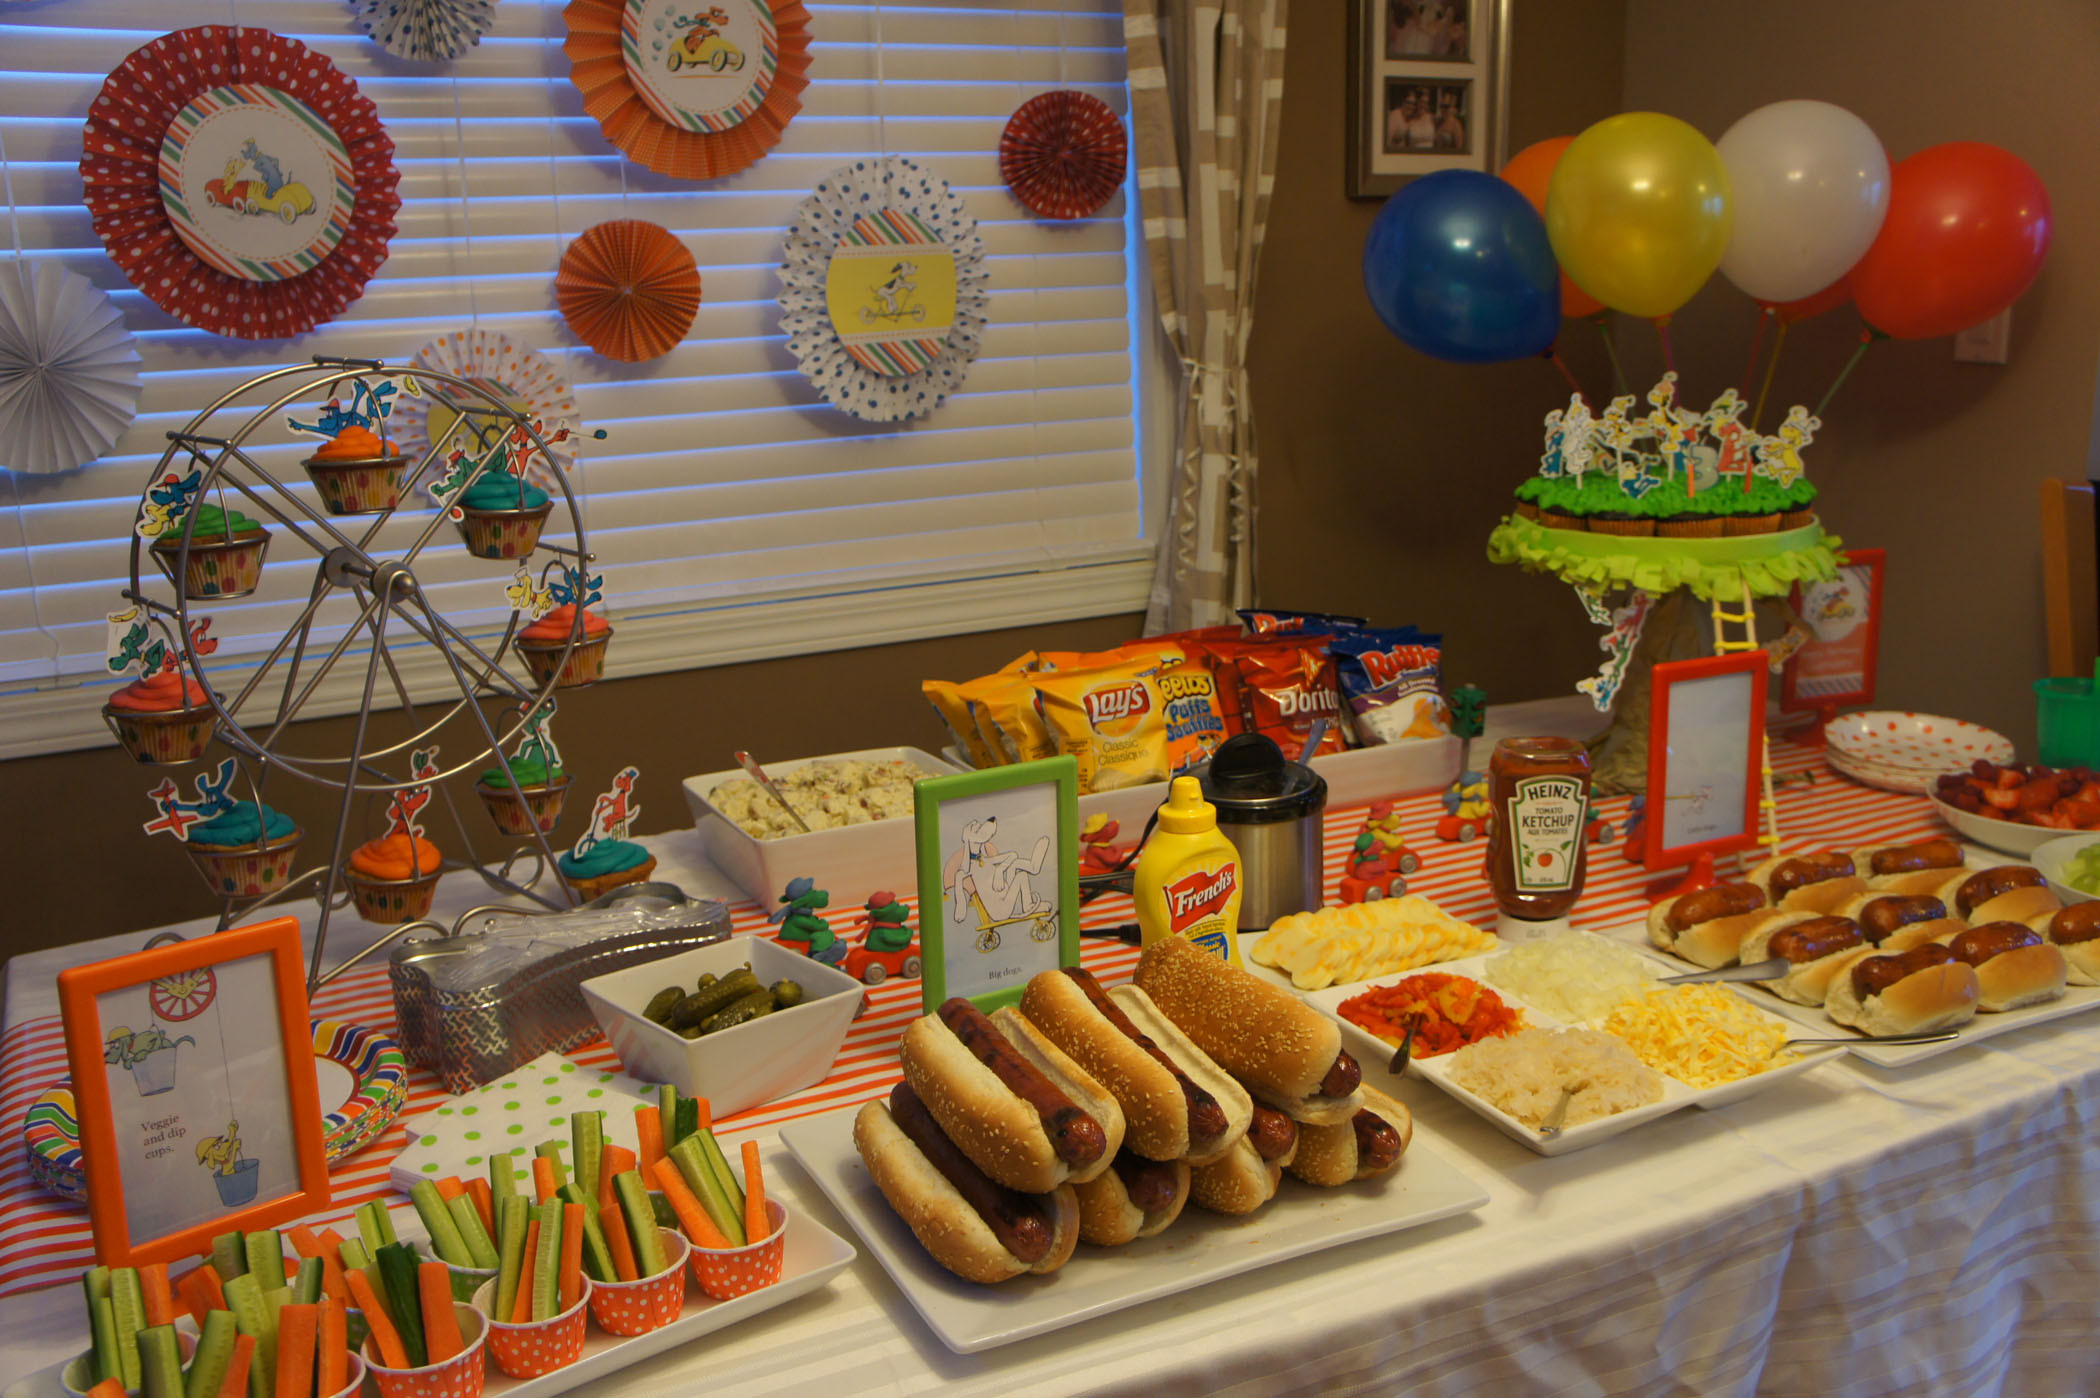 Best ideas about Dog Birthday Decorations . Save or Pin A party A big dog party Now.